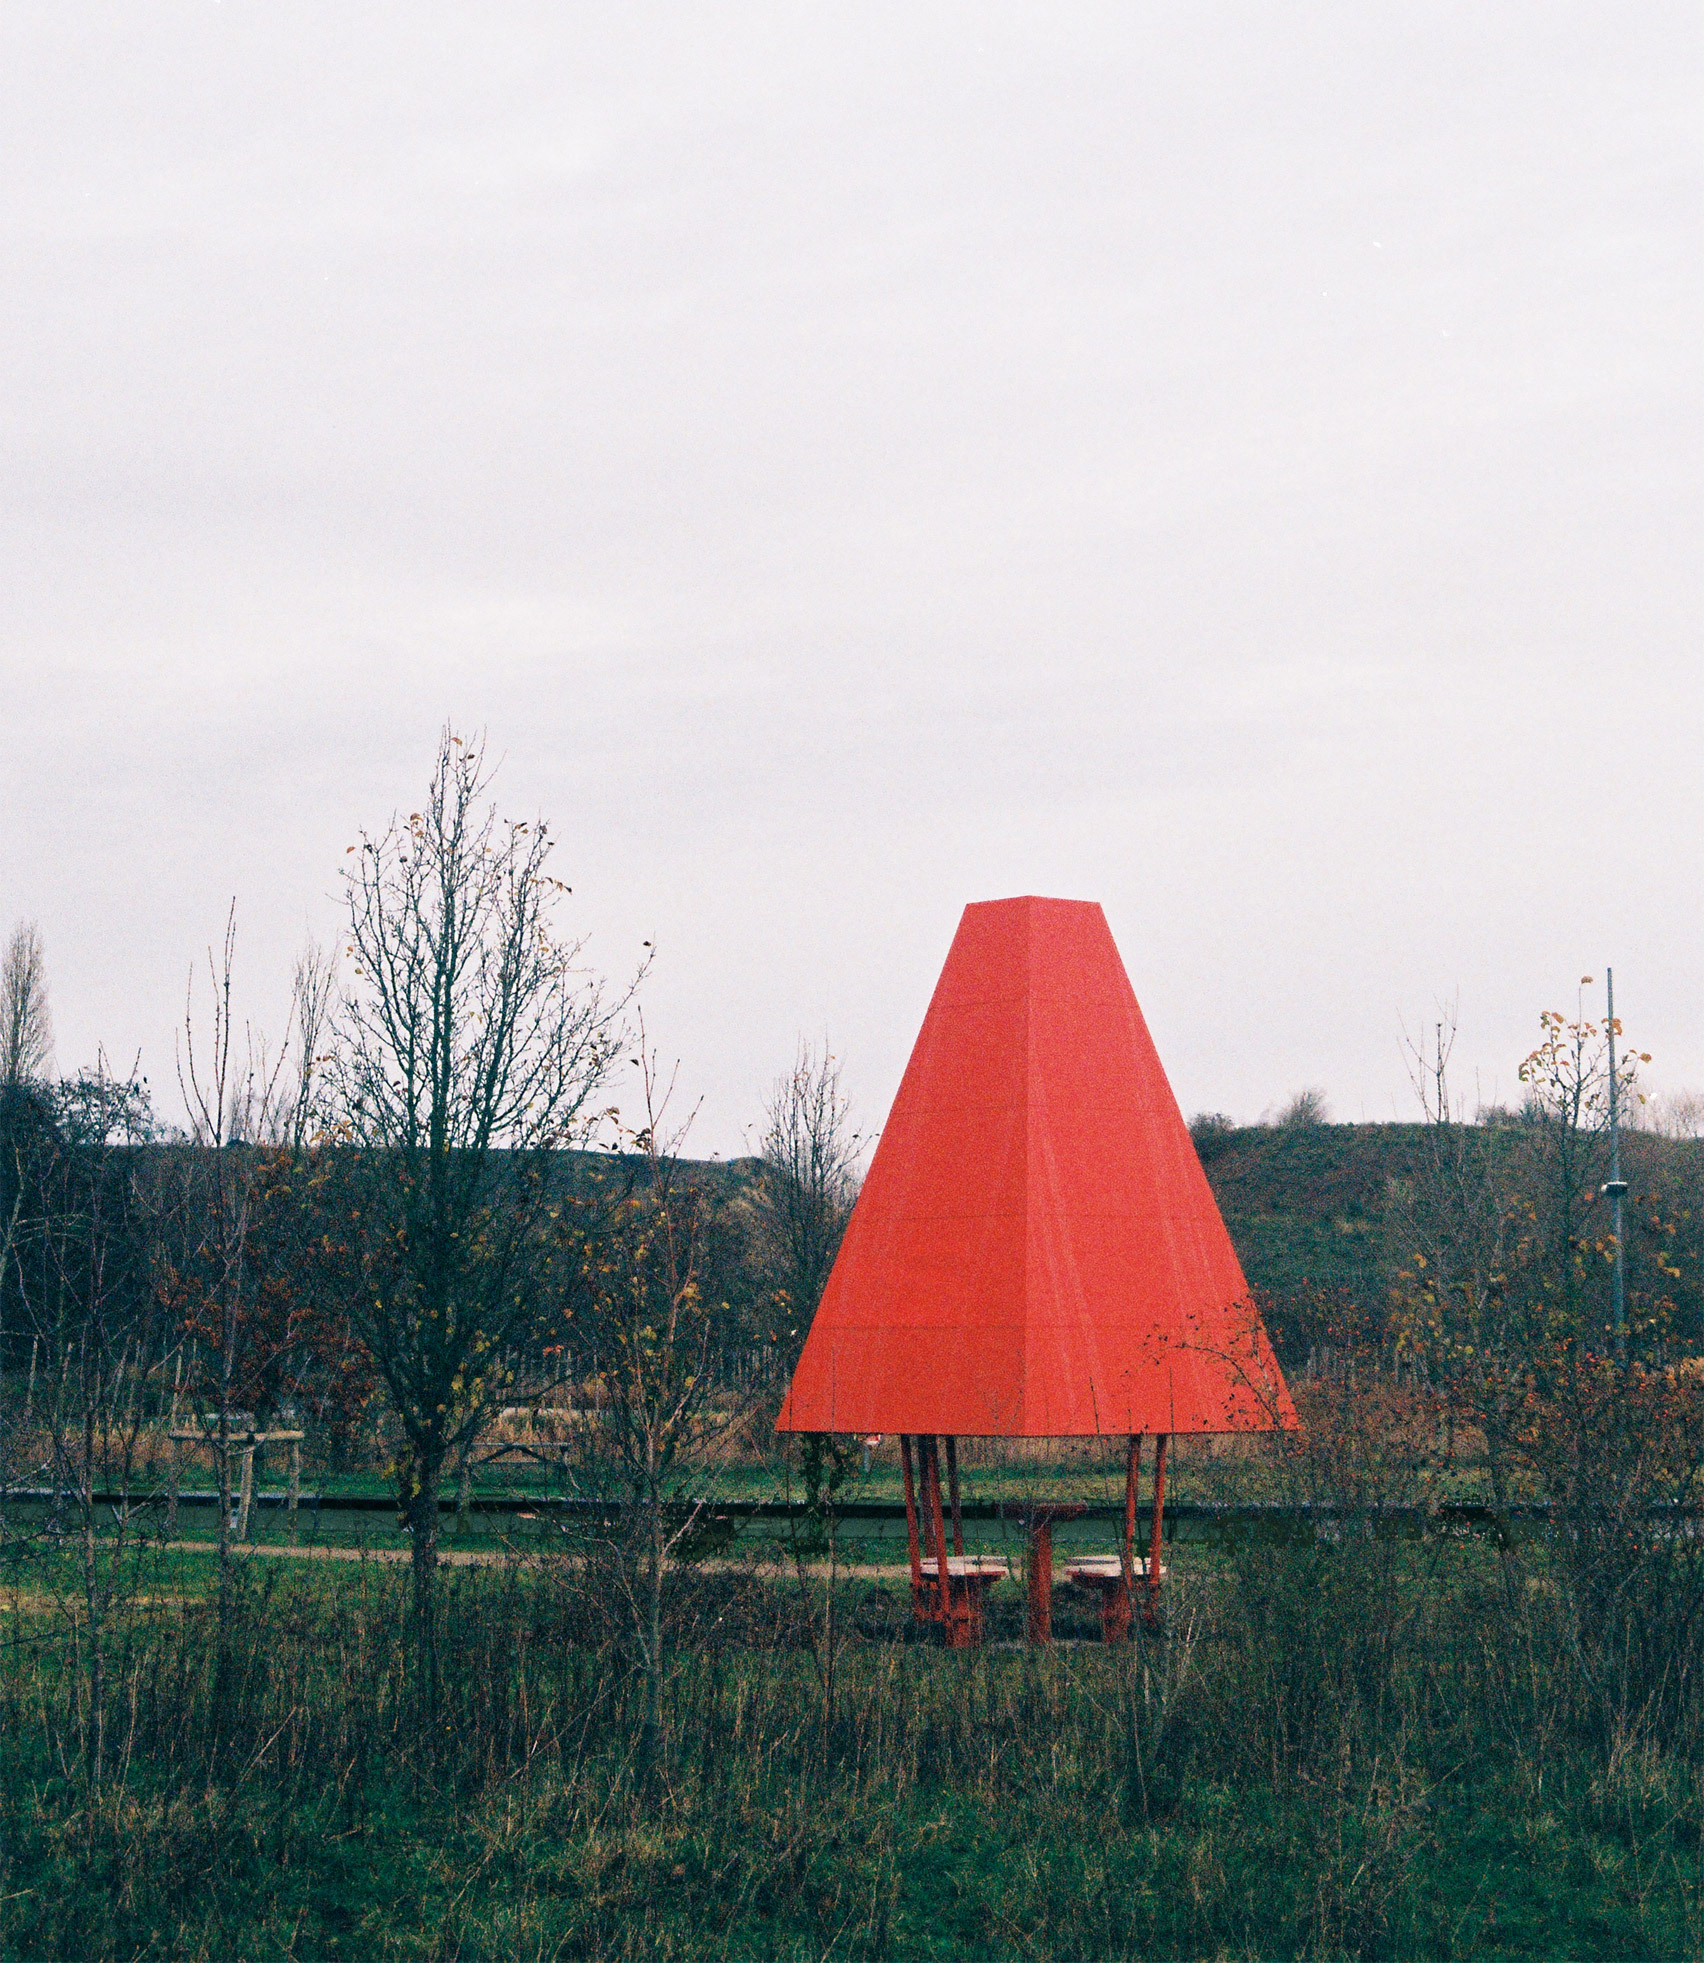 A park with a bright red chess pavilion